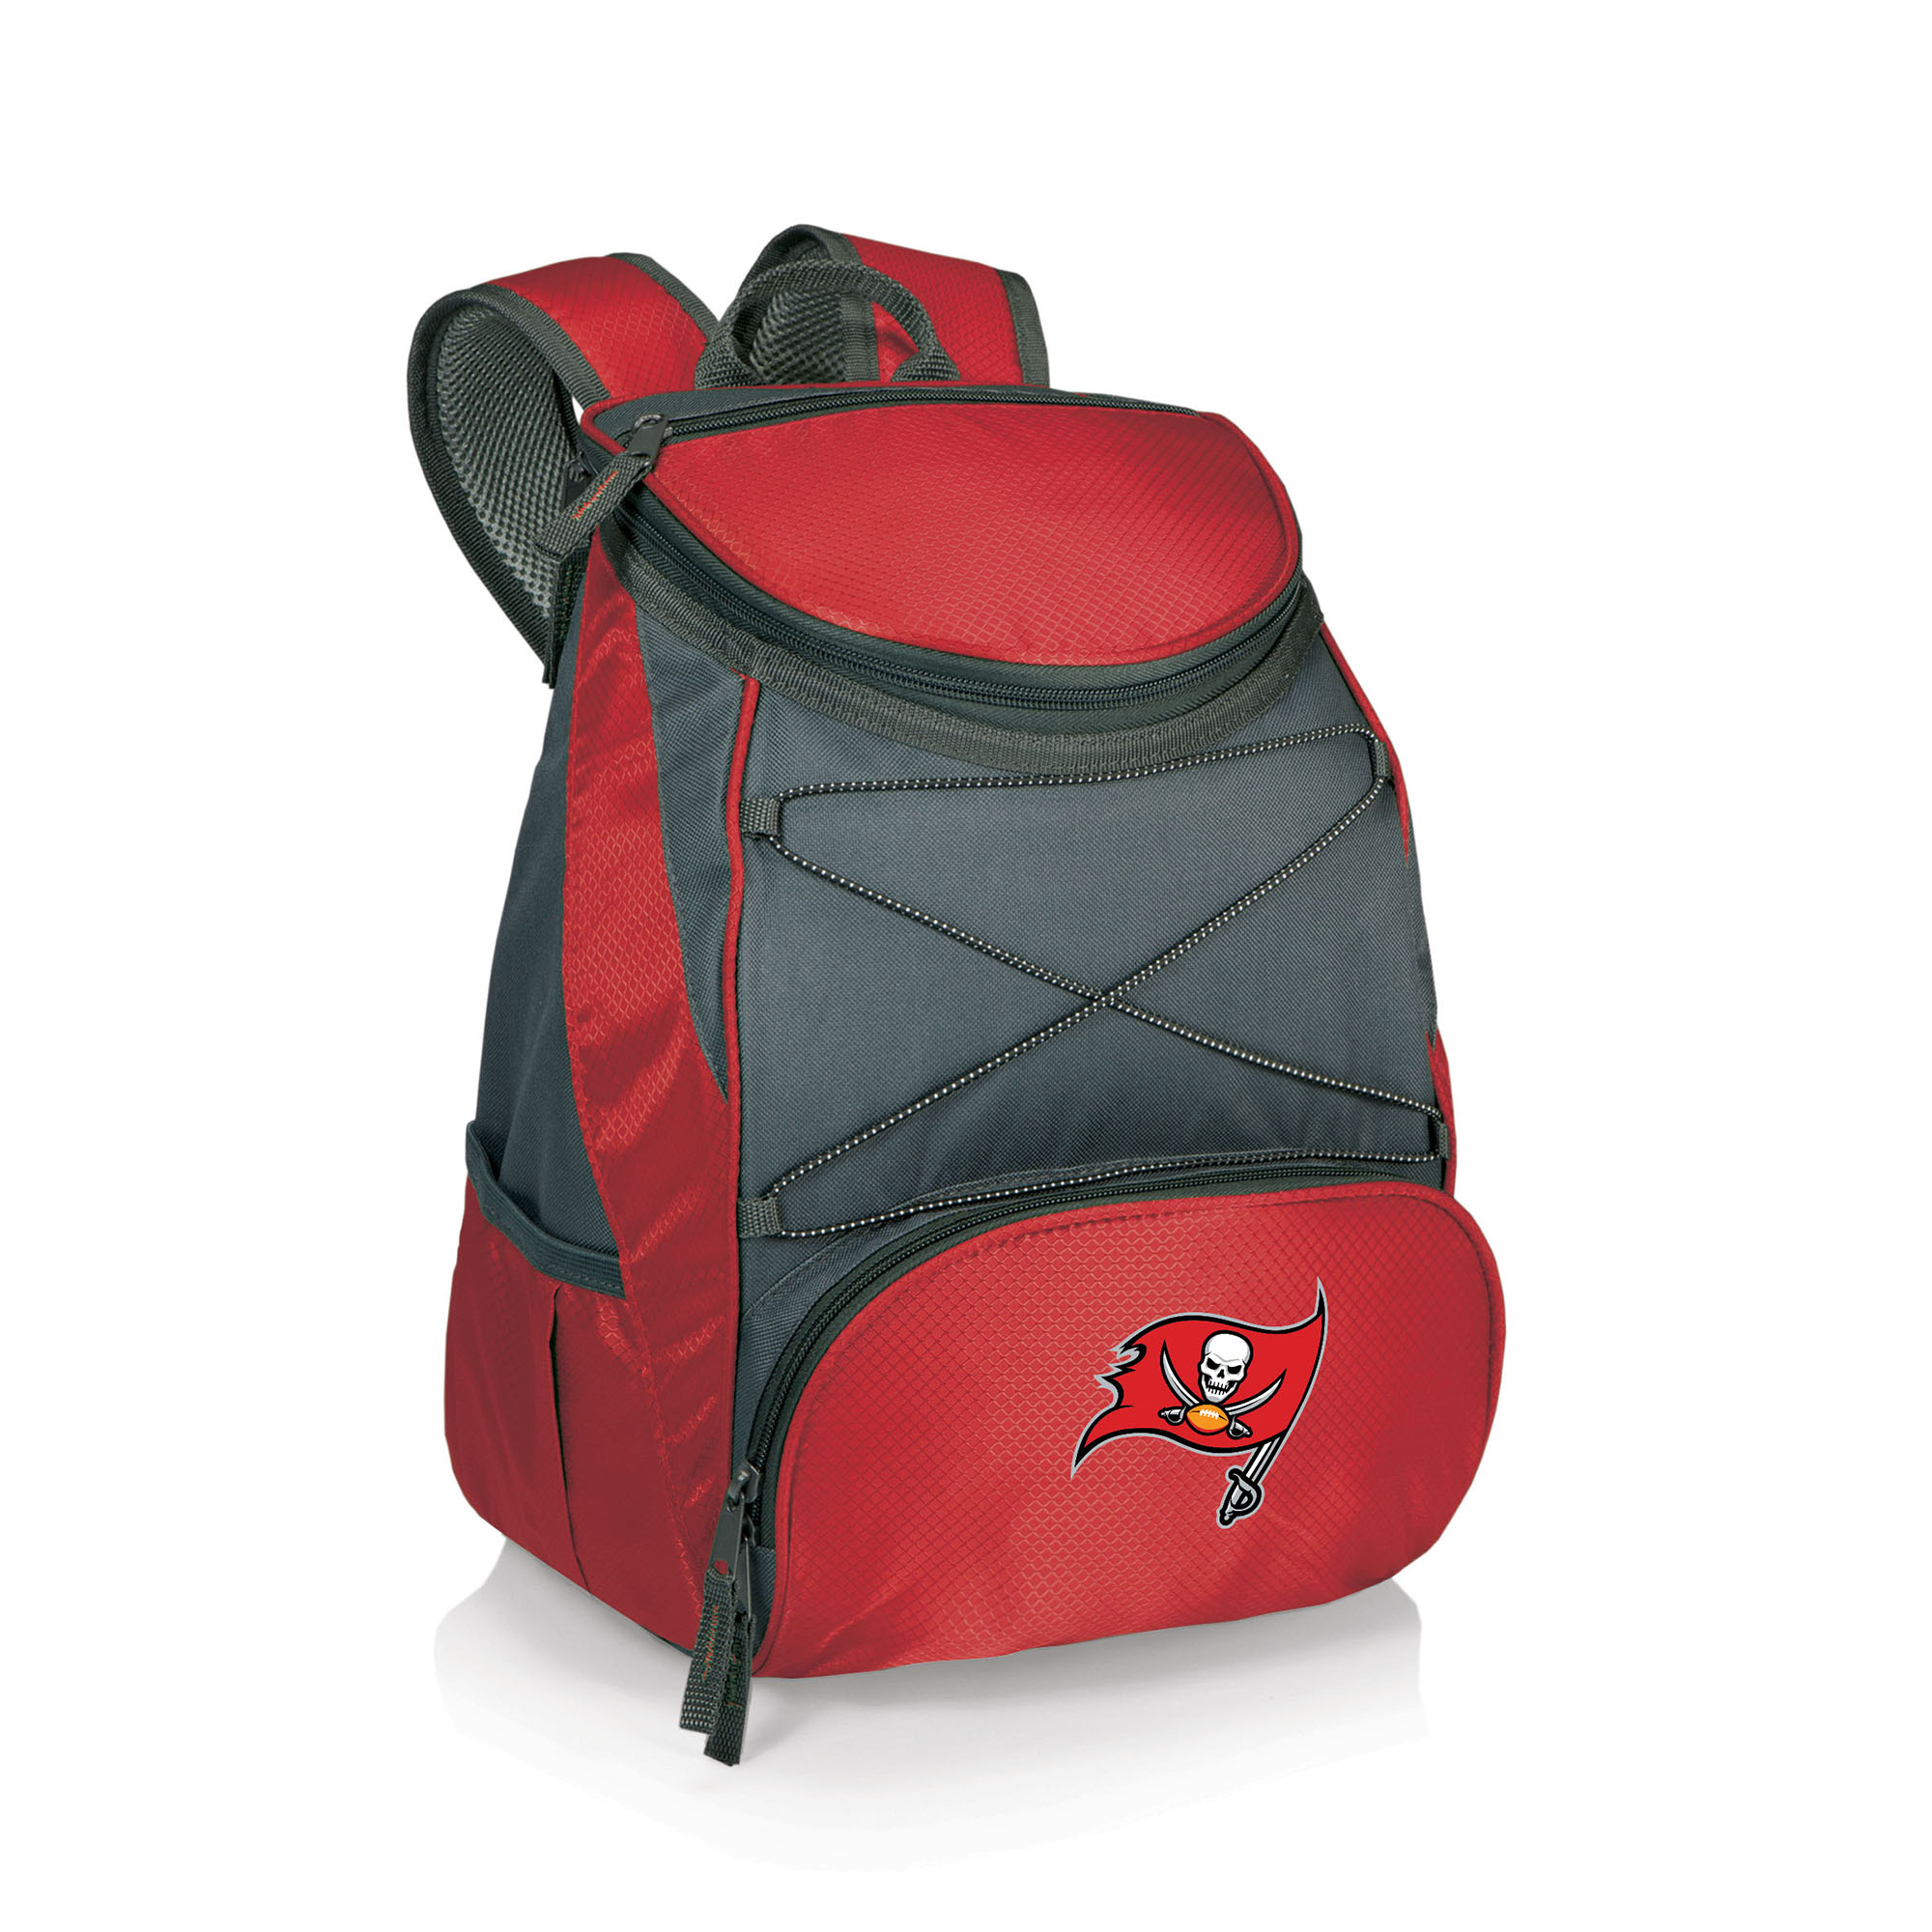 Tampa Bay Buccaneers PTX Backpack Cooler - Red - No Size